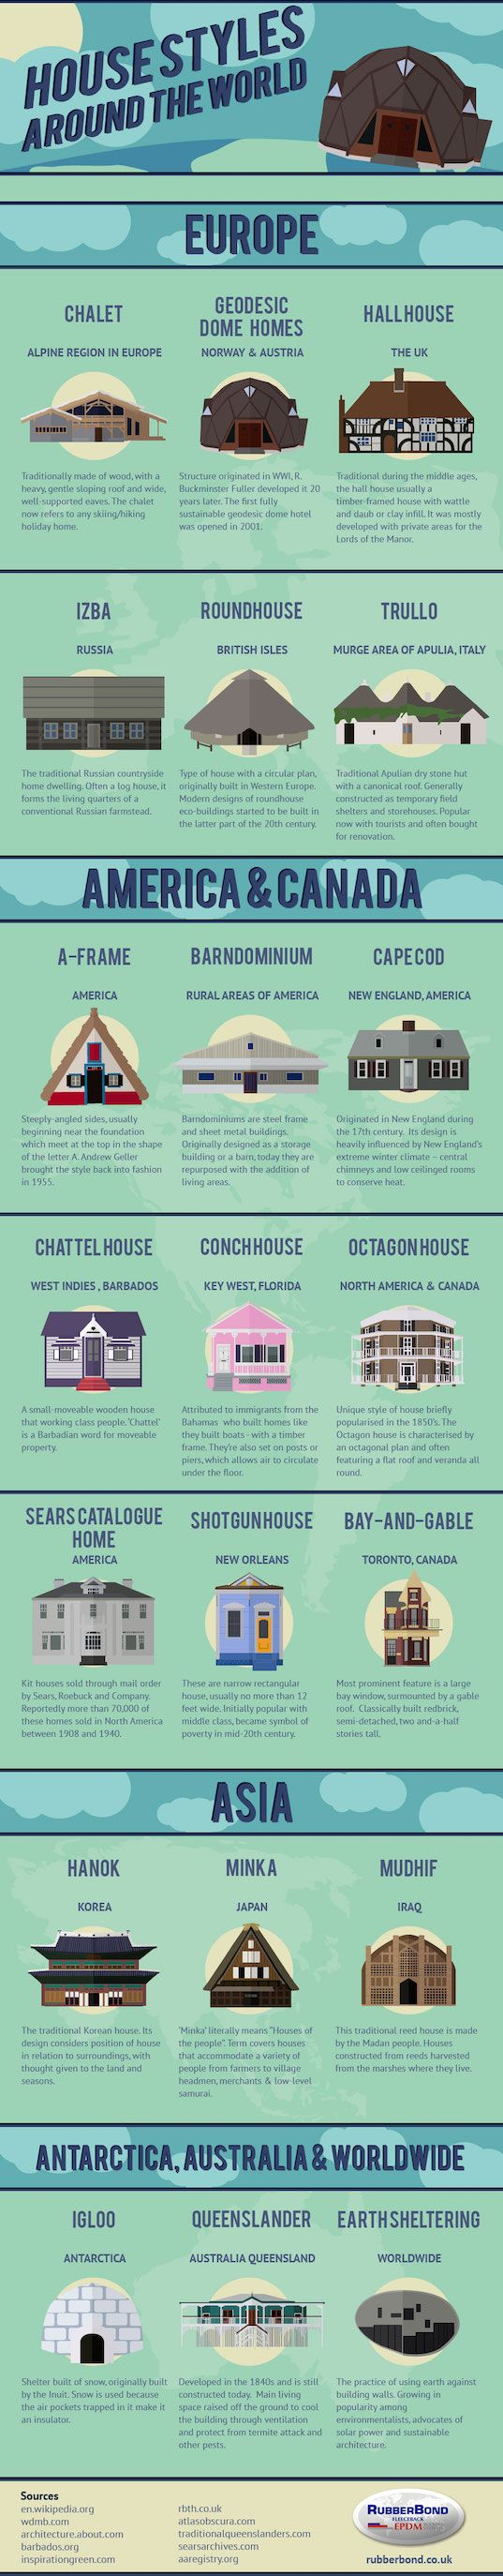 Infographic: 21 interesting house styles from around the world!